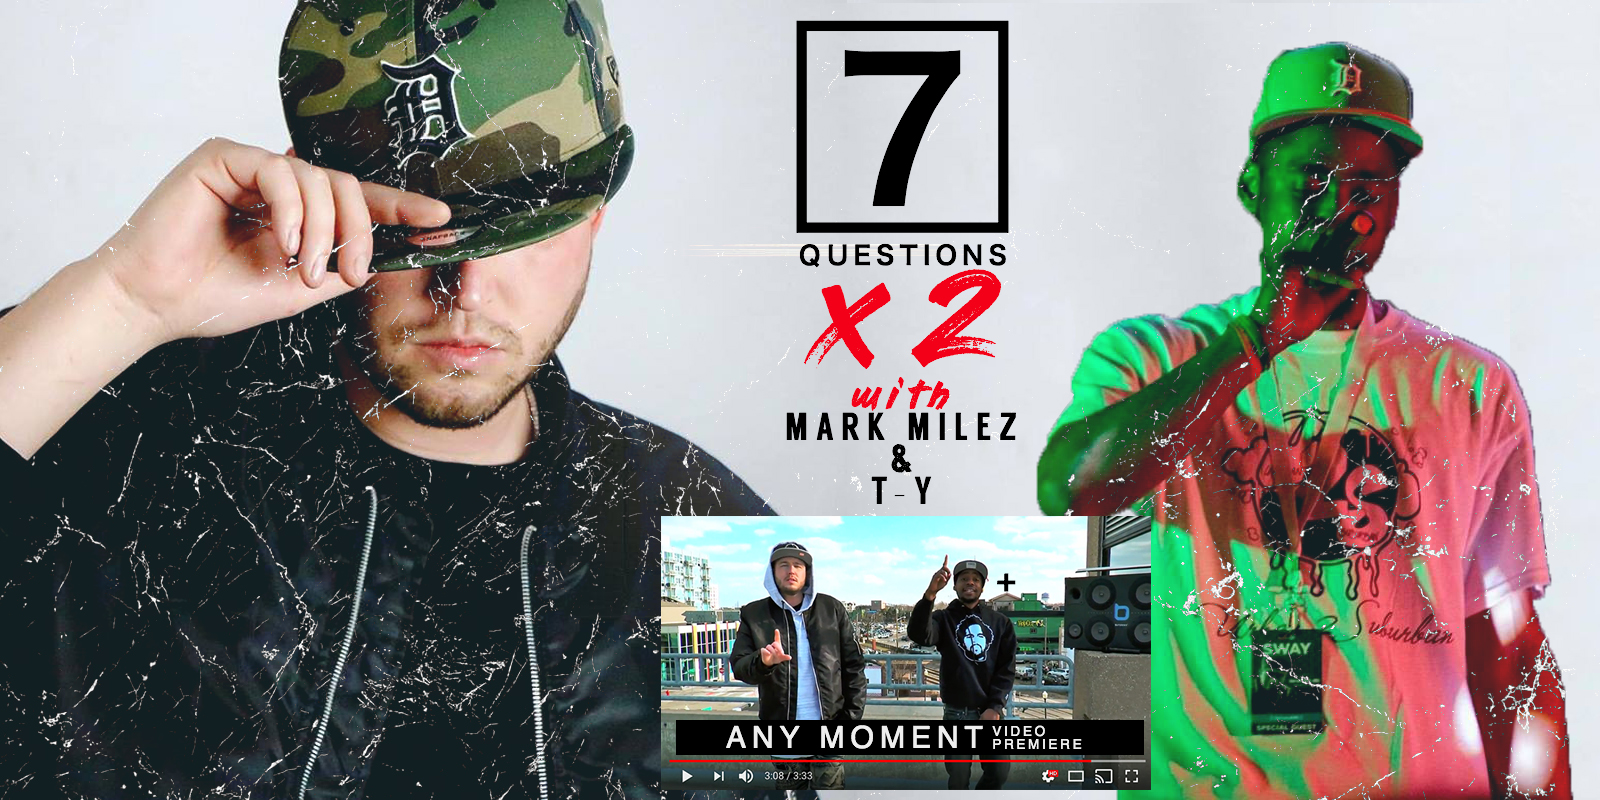 Seven Questions X2 With Mark Milez & T-Y & Any Moment Video Premiere